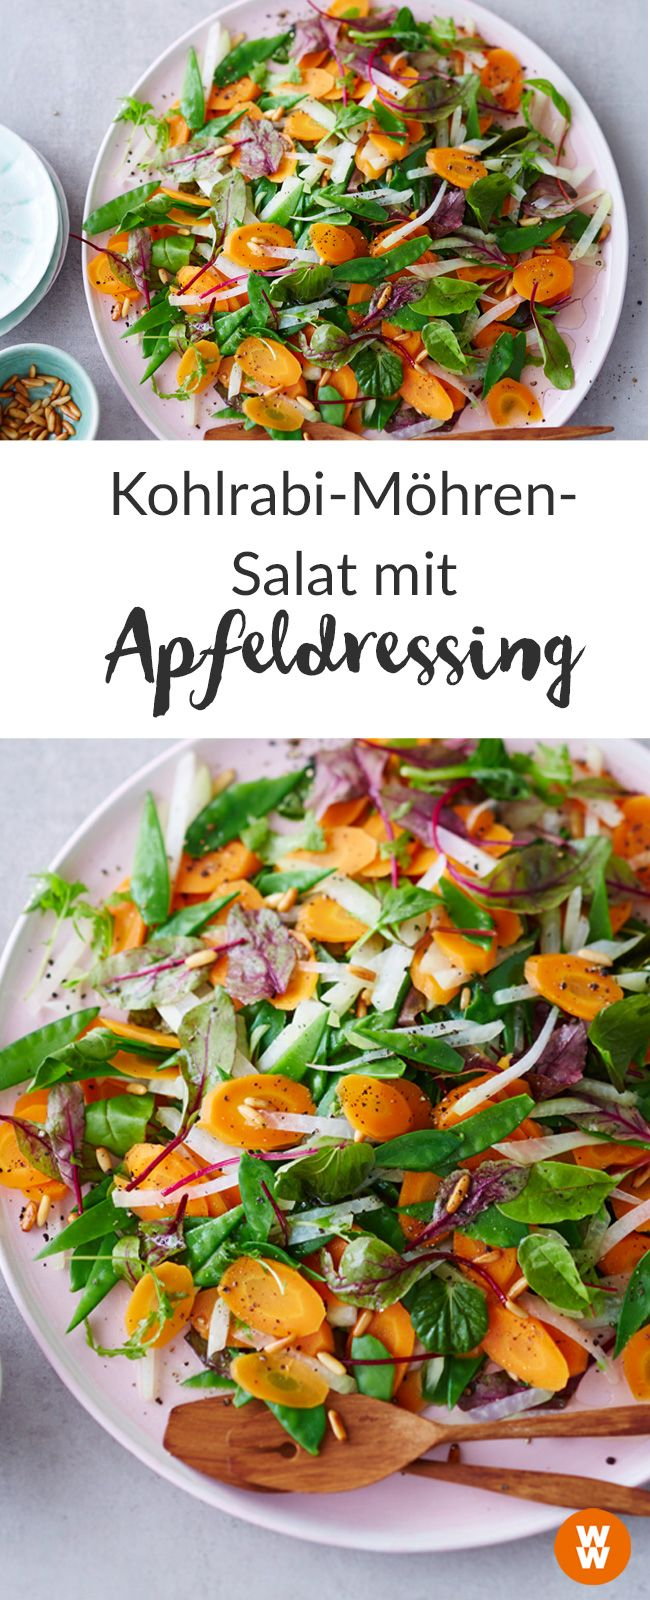 Lust auf einen bunten, gesunden Salat mit Kohlrabi, Möhren,Zuckererbsen und einem leckeren Dressing? I Rezept I WW Your Way I Weight Watchers Rezept I WW Rezept I Weight Watchers Deutschland